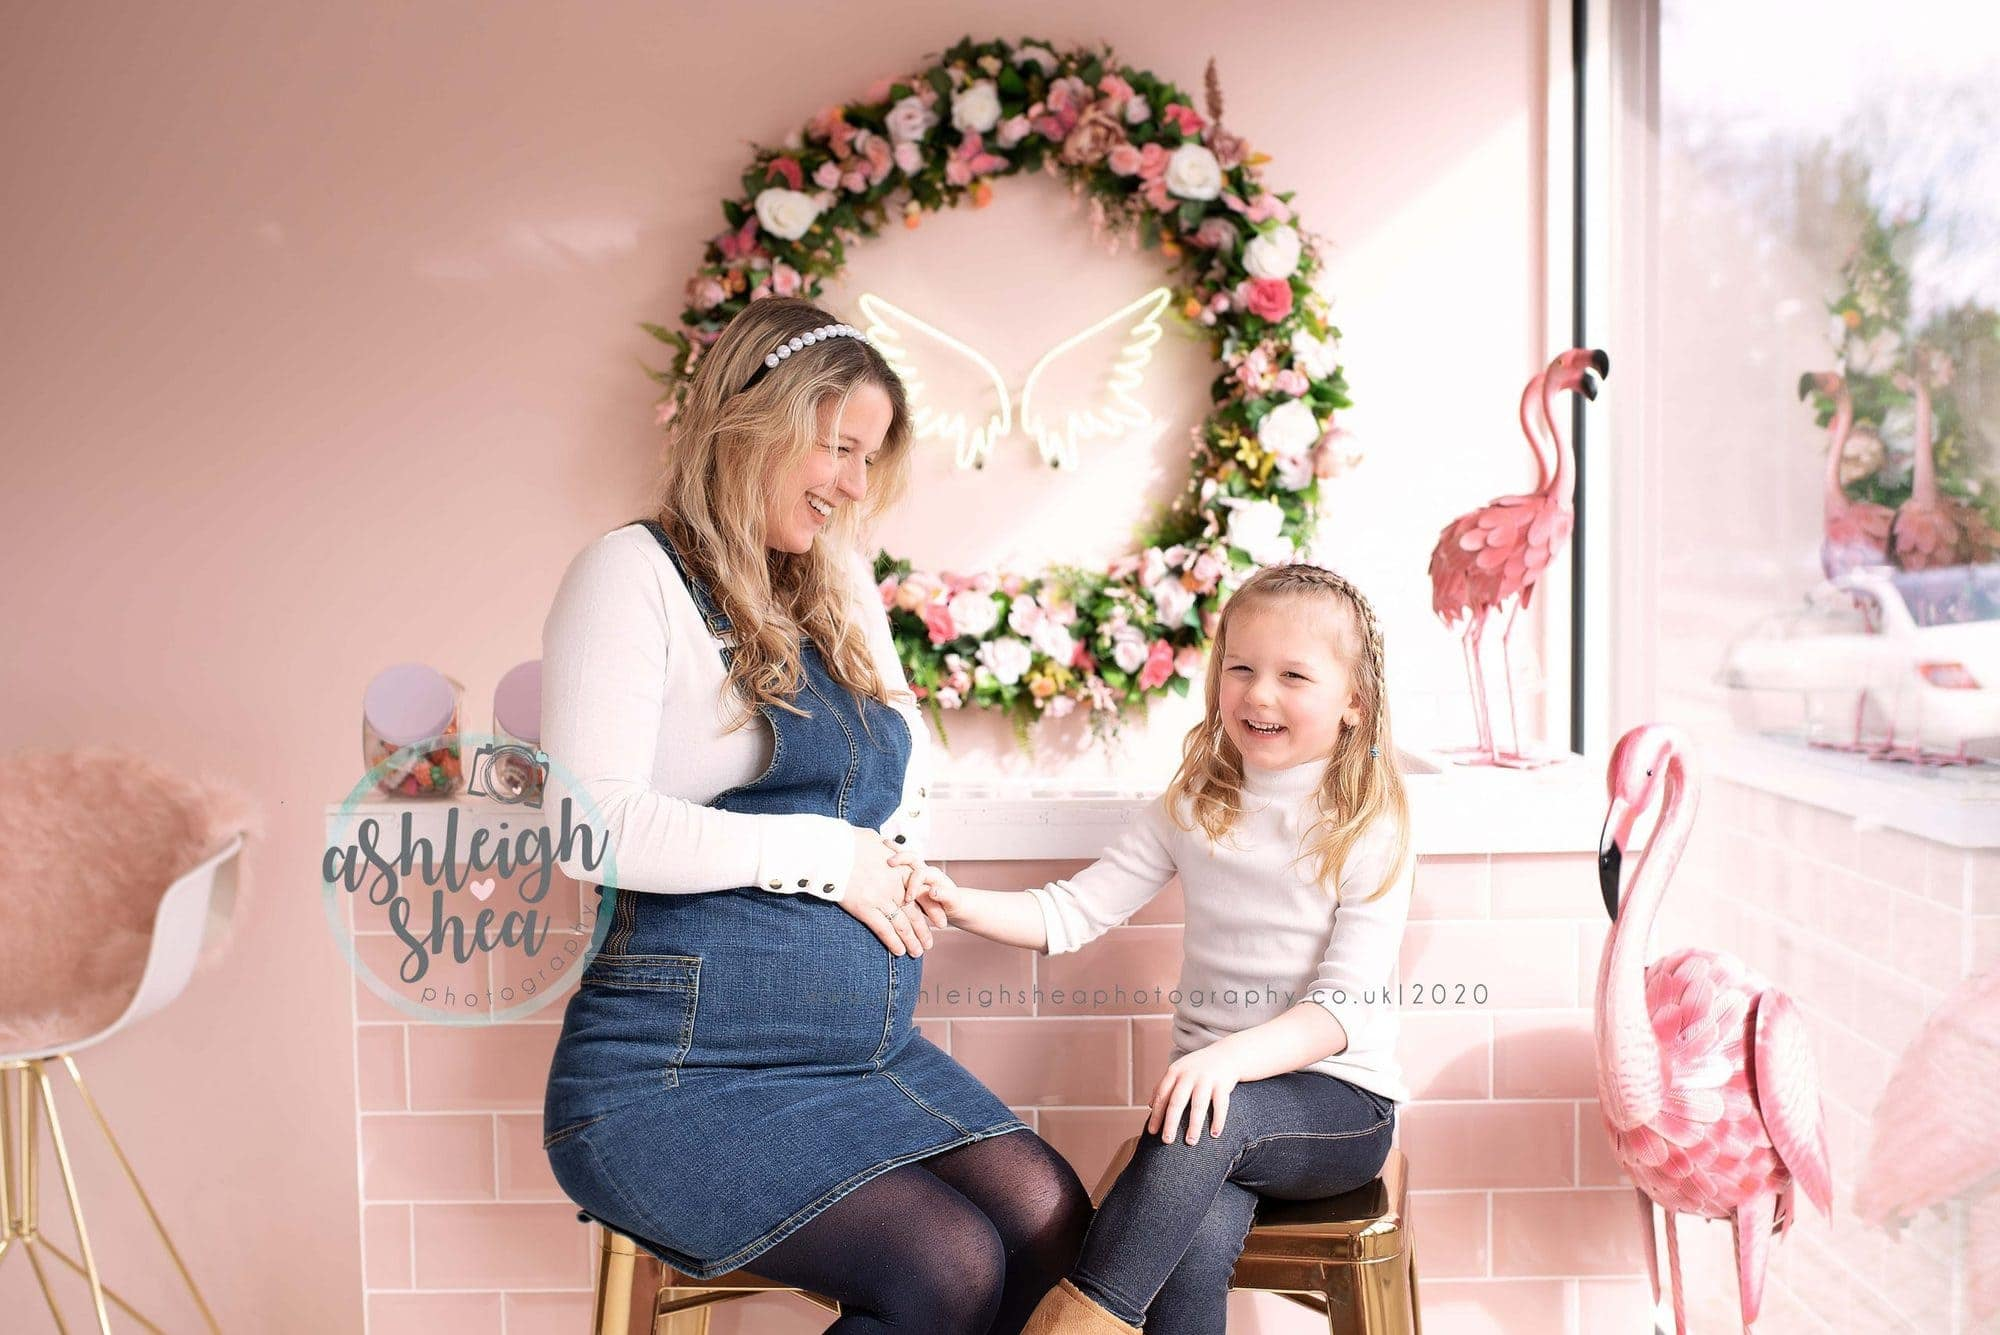 Mum and Daughter, Baby Love, Mum To Be, Maternity Portraits, Pregnancy Pictures, Pregnant, Ashleigh Shea Photography, Blend Make Up London, Bromley, Sidcup, London,Kent